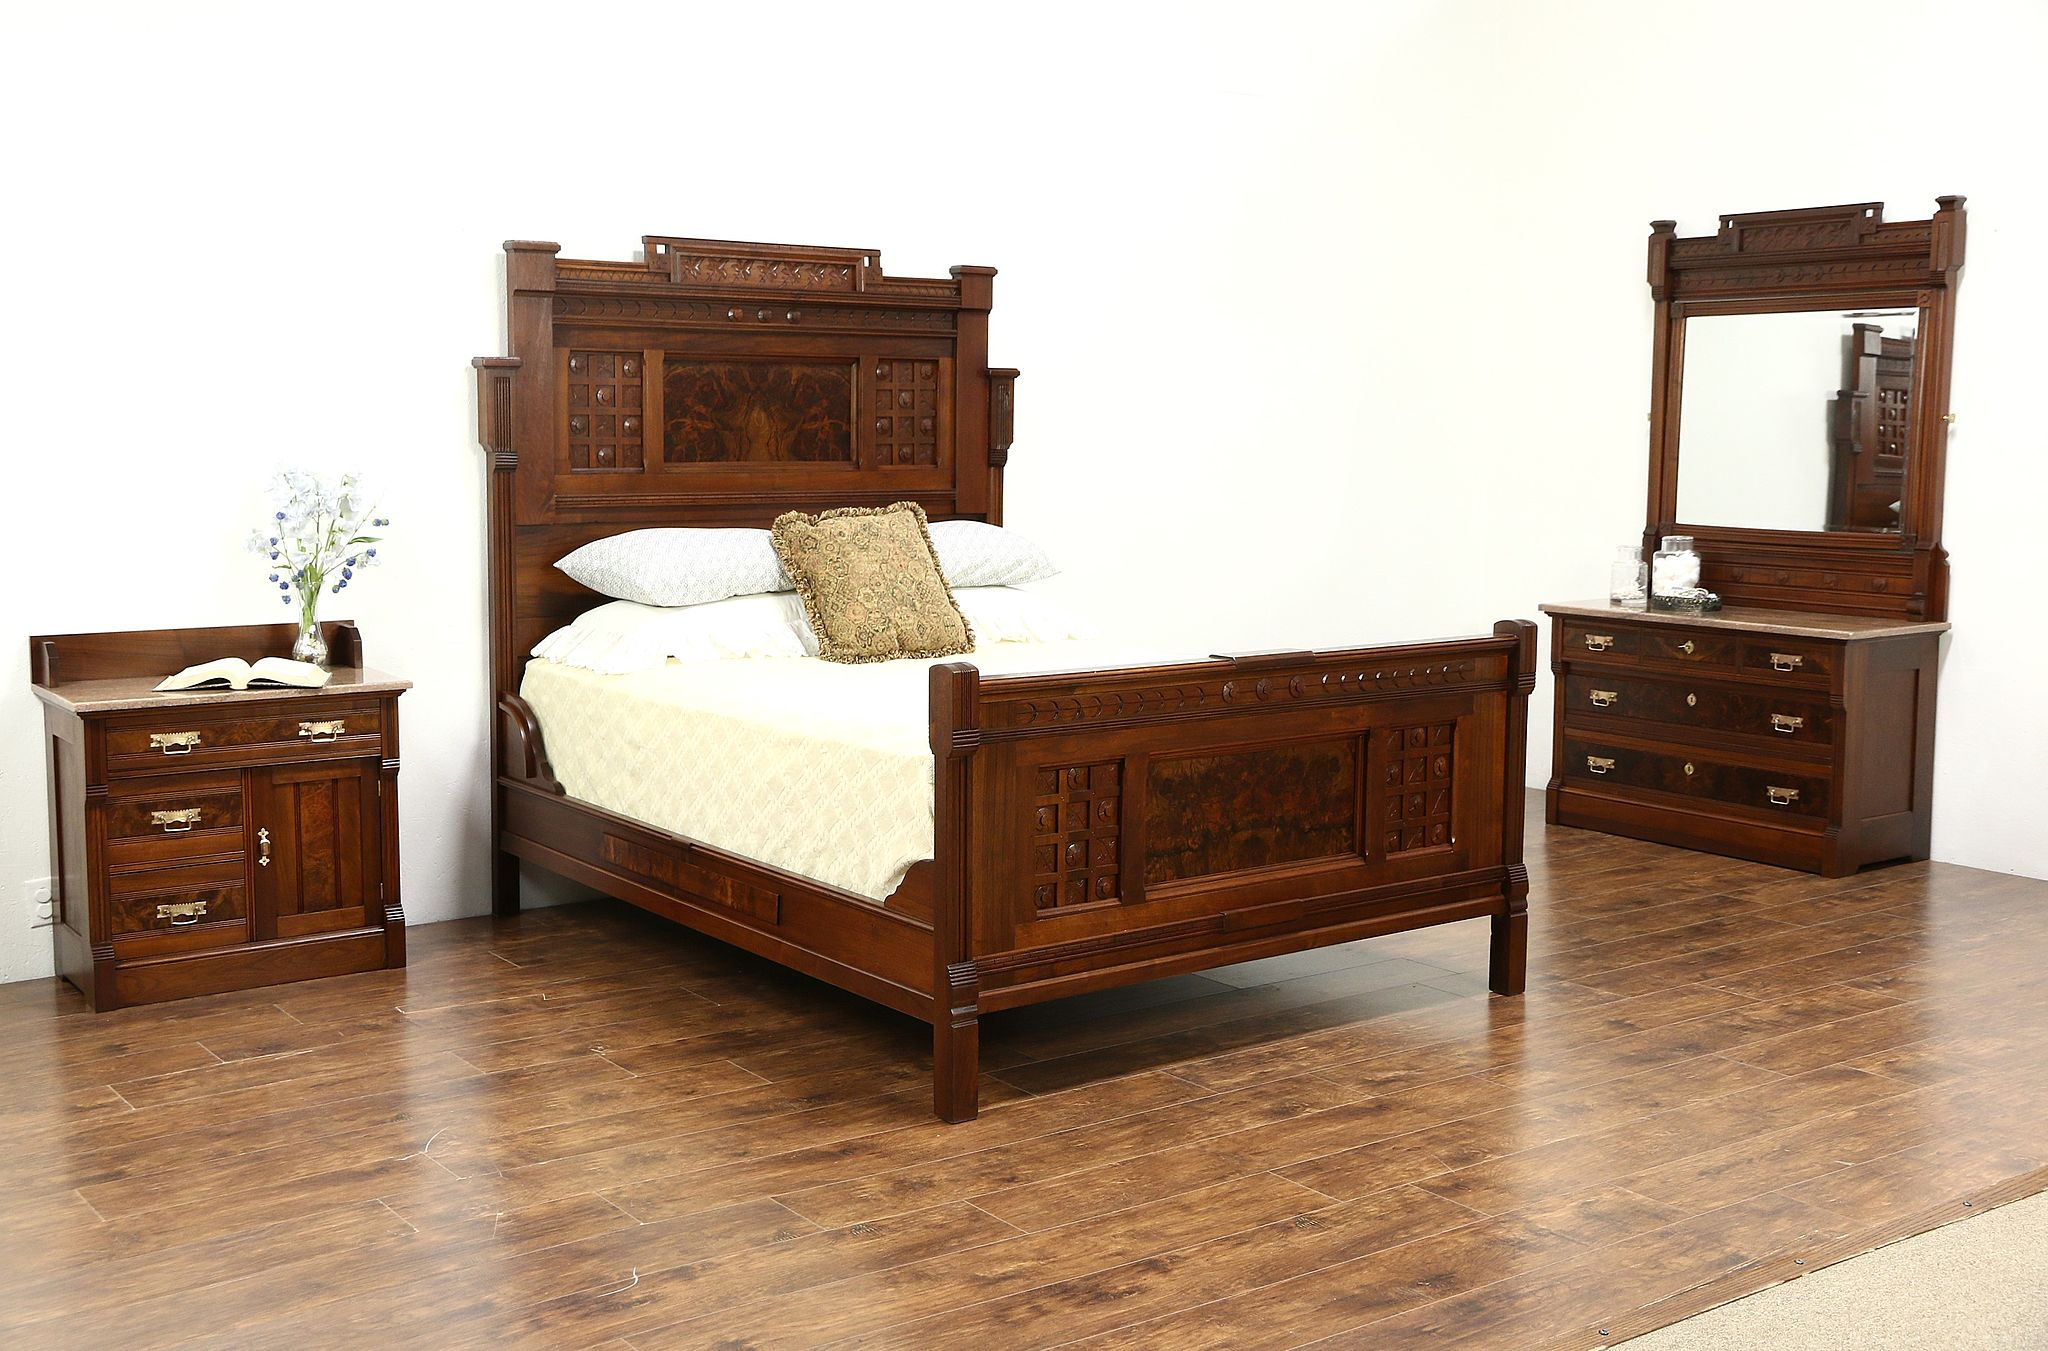 Bedroom Sets With Marble Tops victorian eastlake 1880 antique 3 pc queen size walnut bedroom set